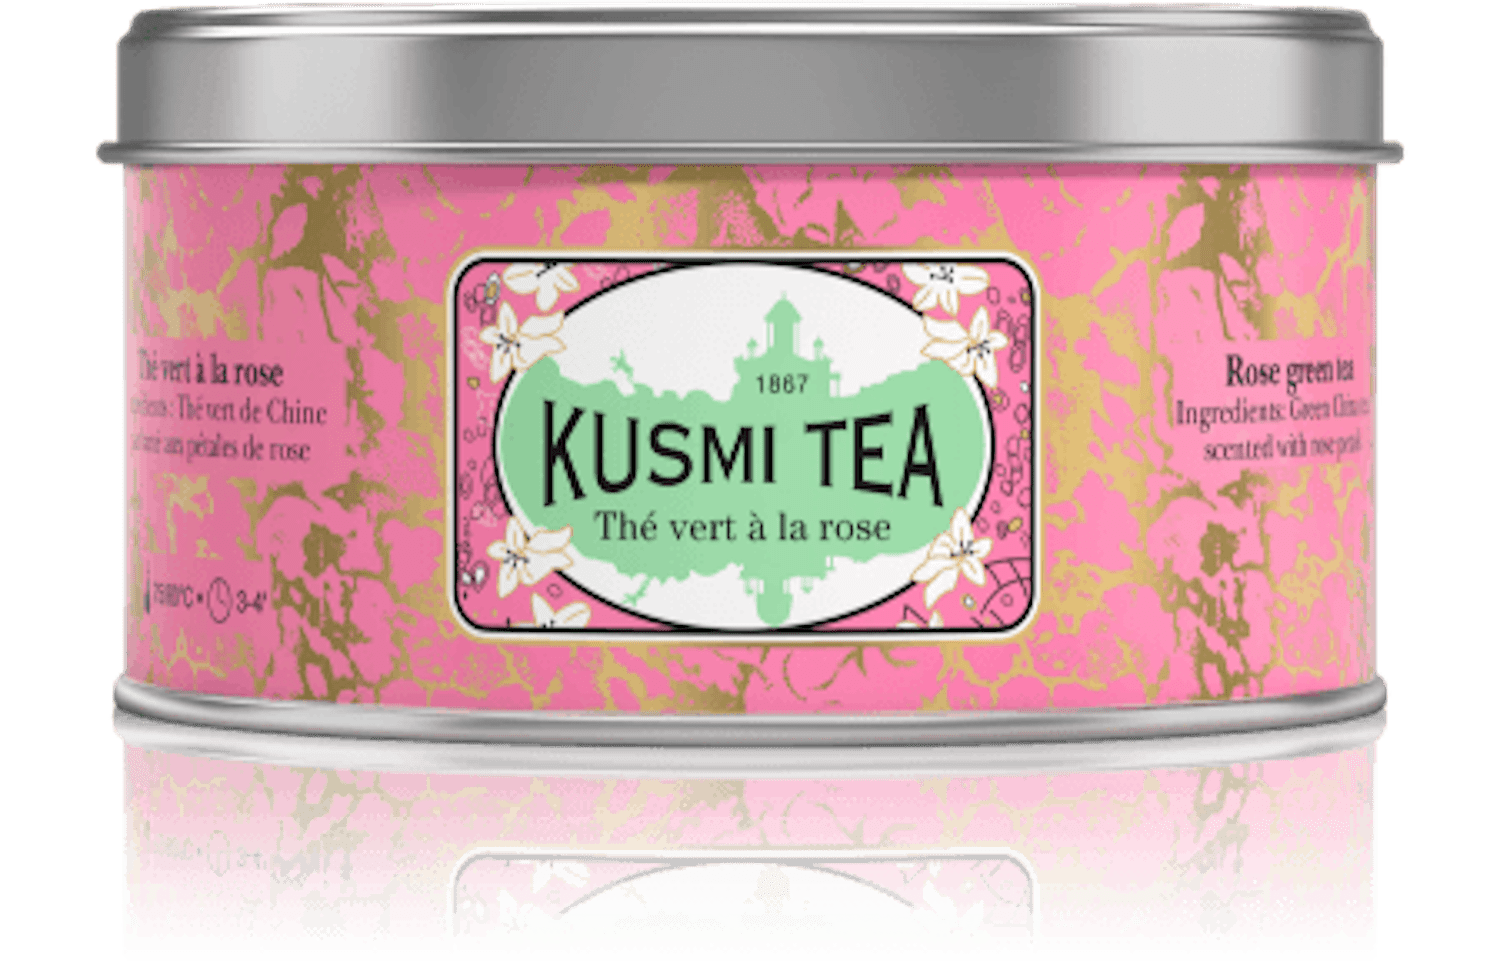 Kusmi Tea Gifts from France